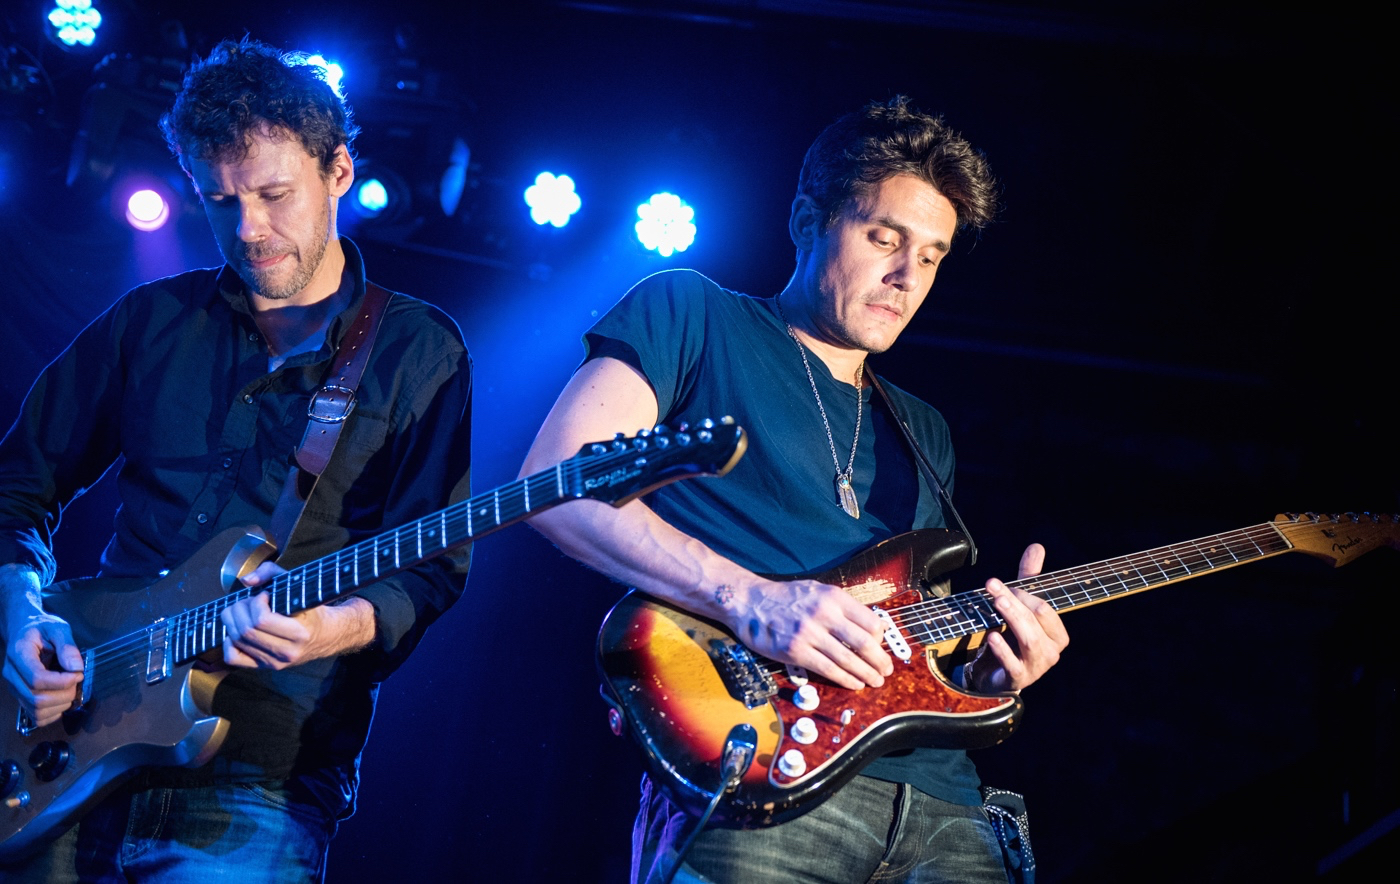 Scott Metzger of Joe Russo's Almost Dead rips it up with special guest John Mayer at Brooklyn Bowl on night two of his band's sold-out residency.